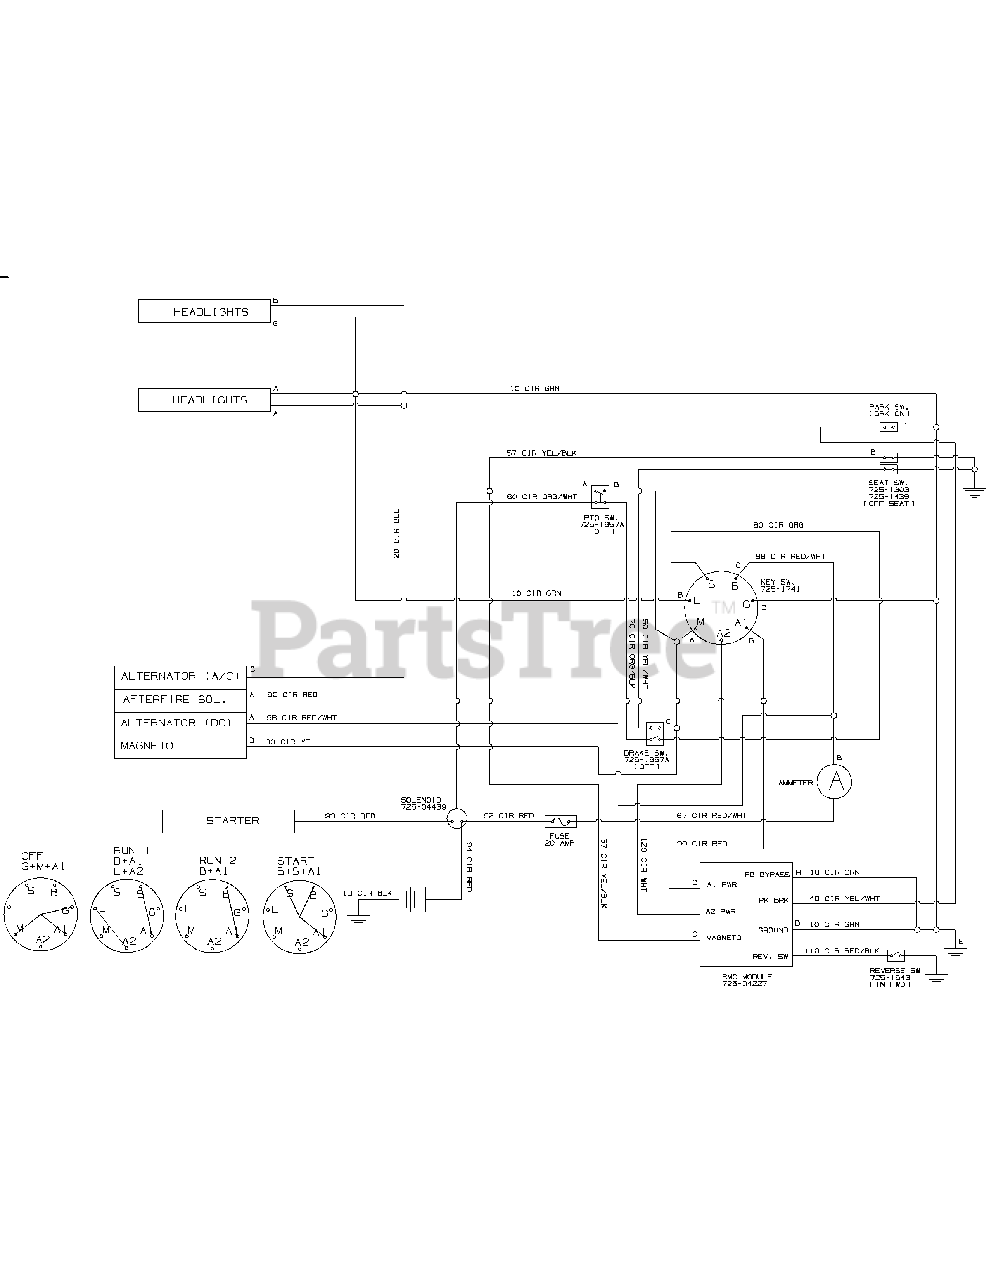 [DIAGRAM_5LK]  Troy-Bilt 13YX79KT211 - Troy-Bilt Horse XP Lawn Tractor (2015) Wiring  Harness Parts Lookup with Diagrams | PartsTree | Troy Bilt Horse Lawn Tractor Wiring Diagram |  | PartsTree